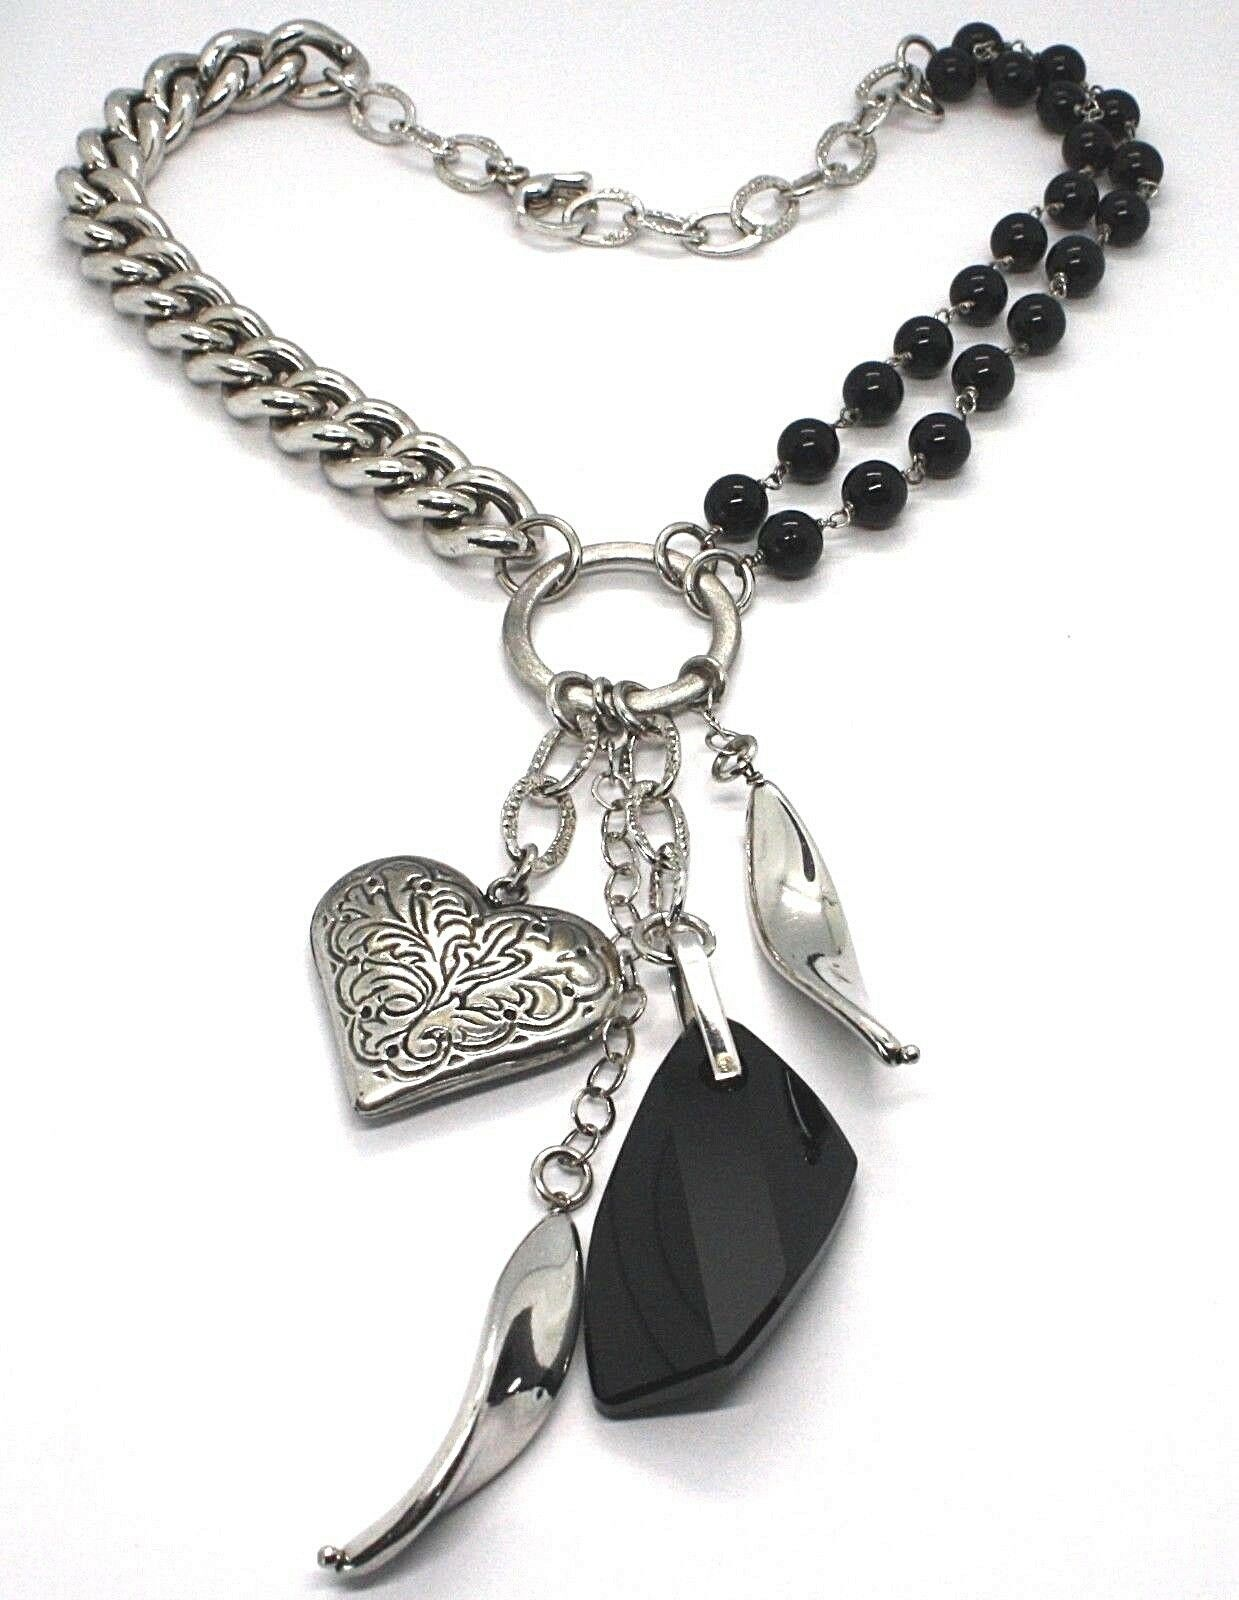 Necklace Silver 925, Double Row Onyx, Chain Curb , Heart Milled